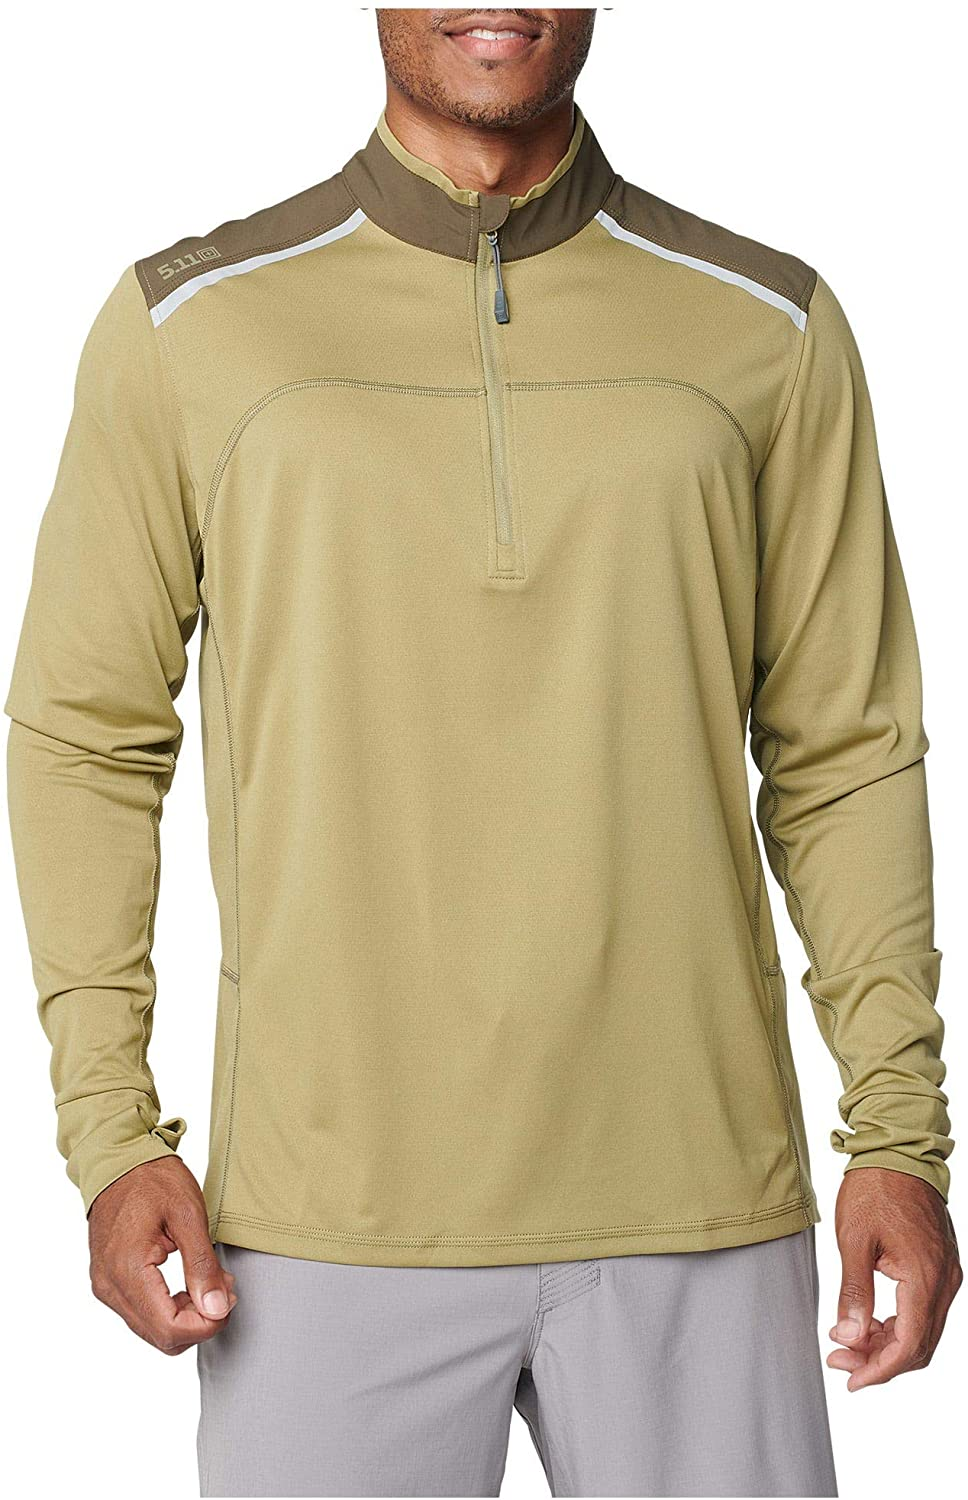 5.11 Tactical Men's Max Effort 1/4 Zip Pullover Jacket, Wicking and Anti-Odor Finish, Style 82114